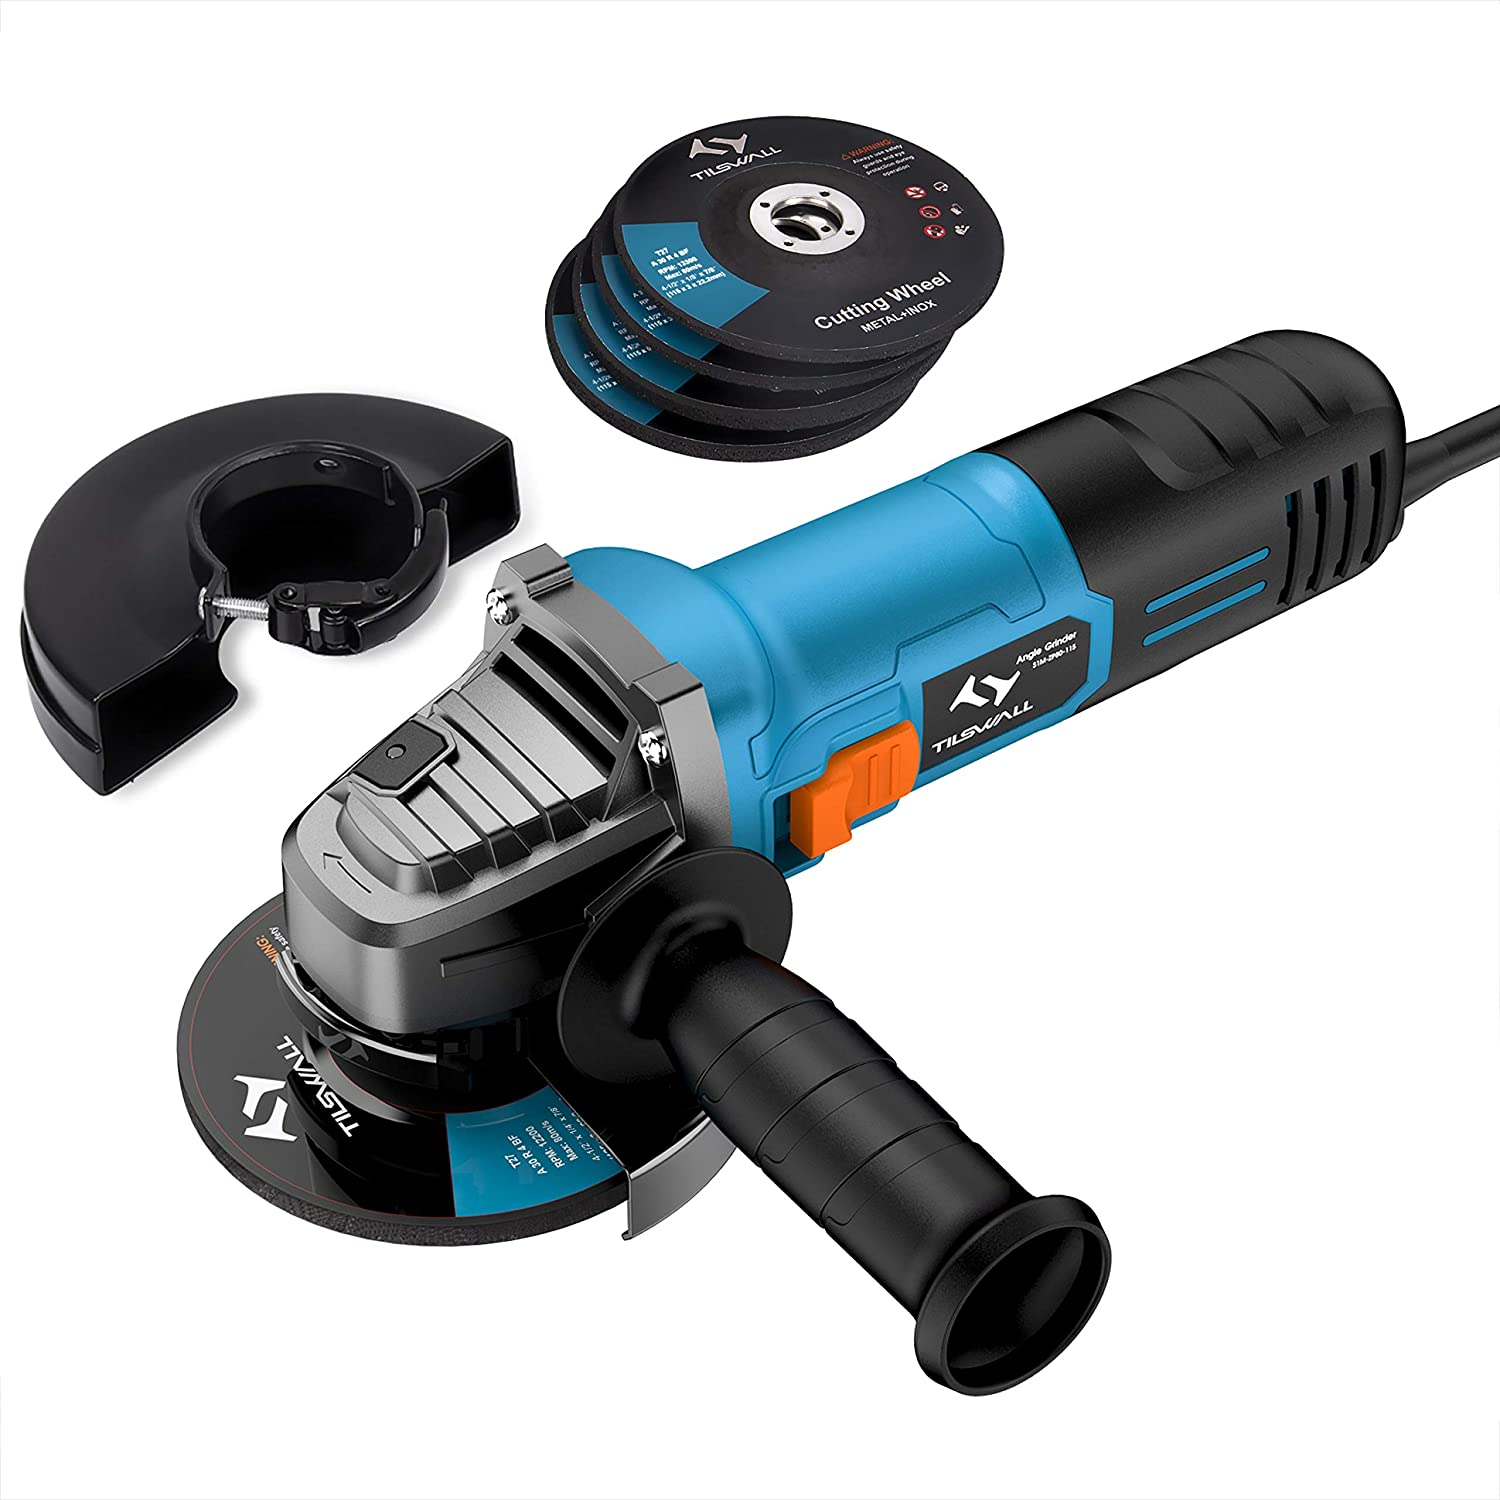 4-1//2-inch outil HPP avec interrupteur /à palette 12000 tr//min Meuleuse dangle 11A 1300W Tacklife P3AG115